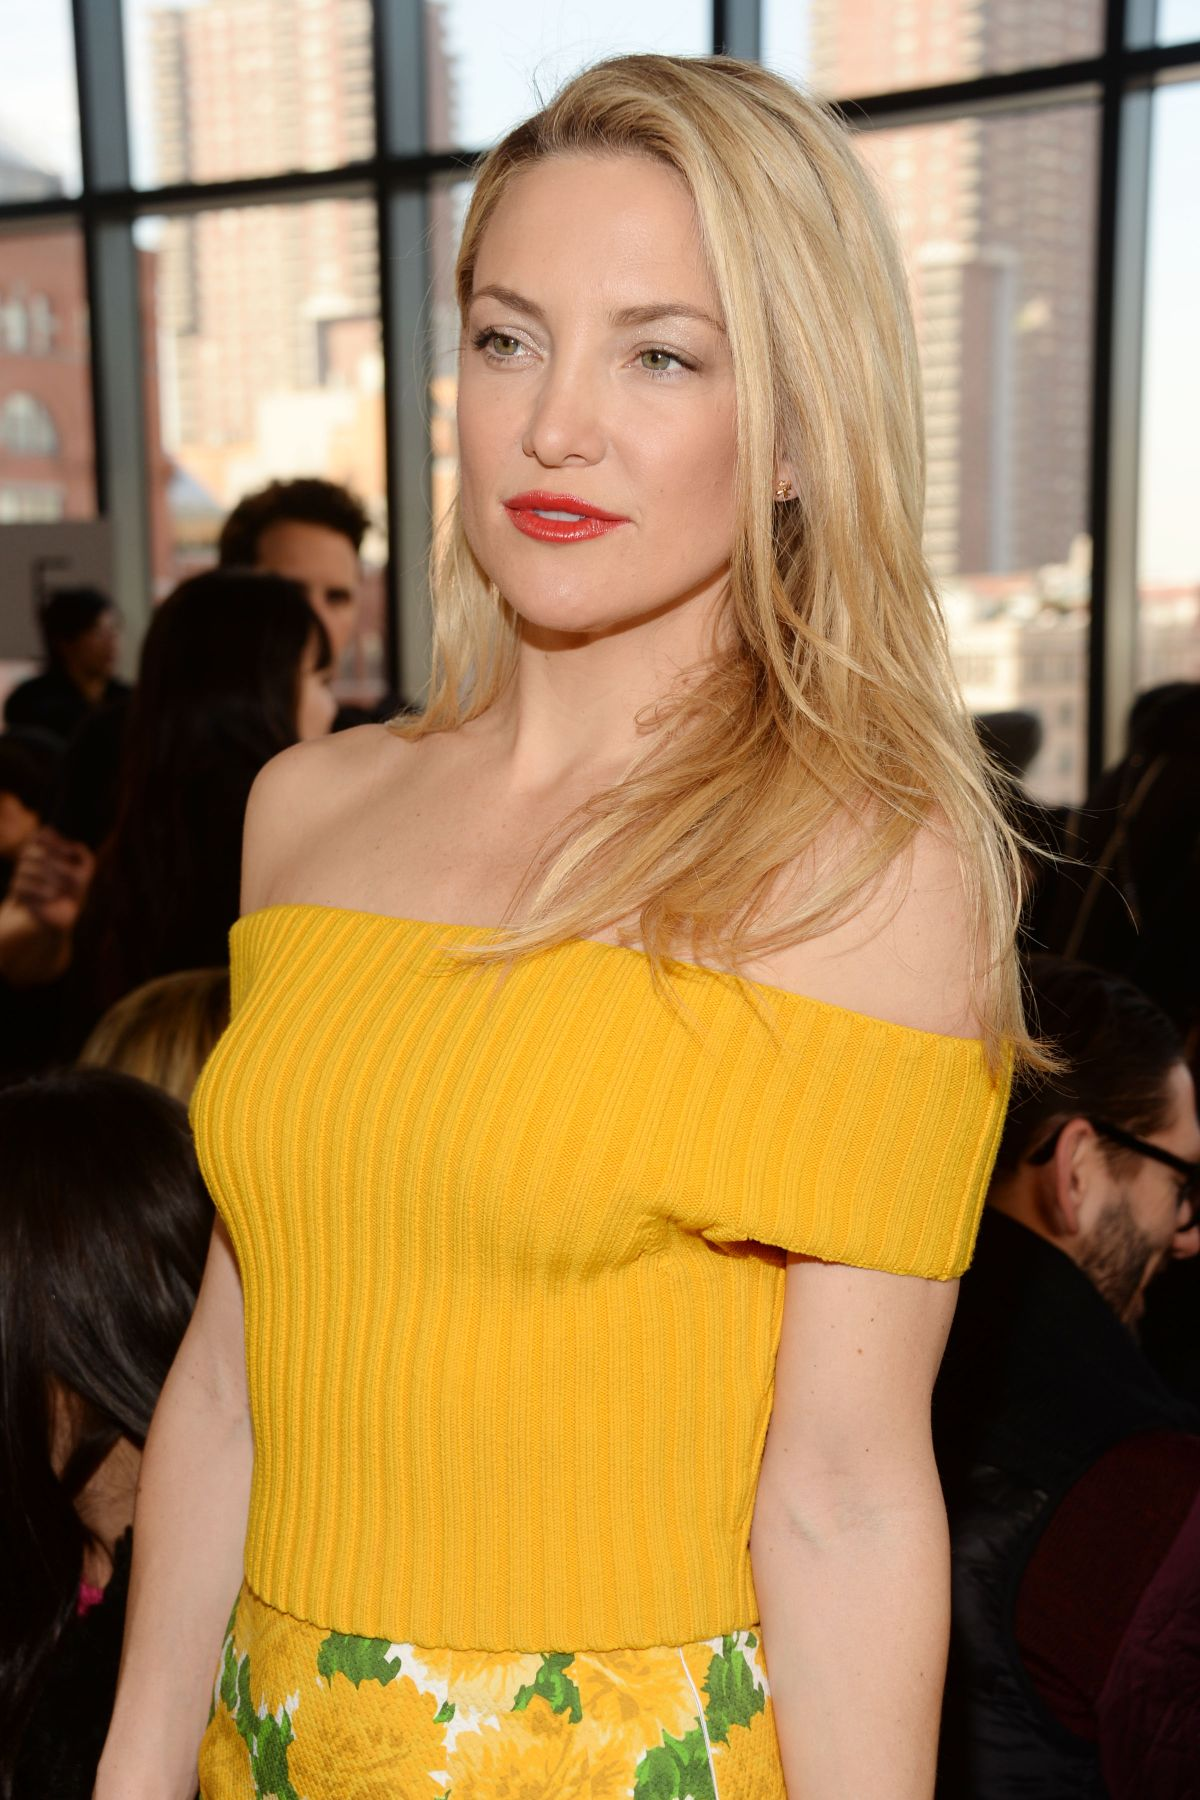 KATE HUDSON at Michael Kors Fashion Show in New York